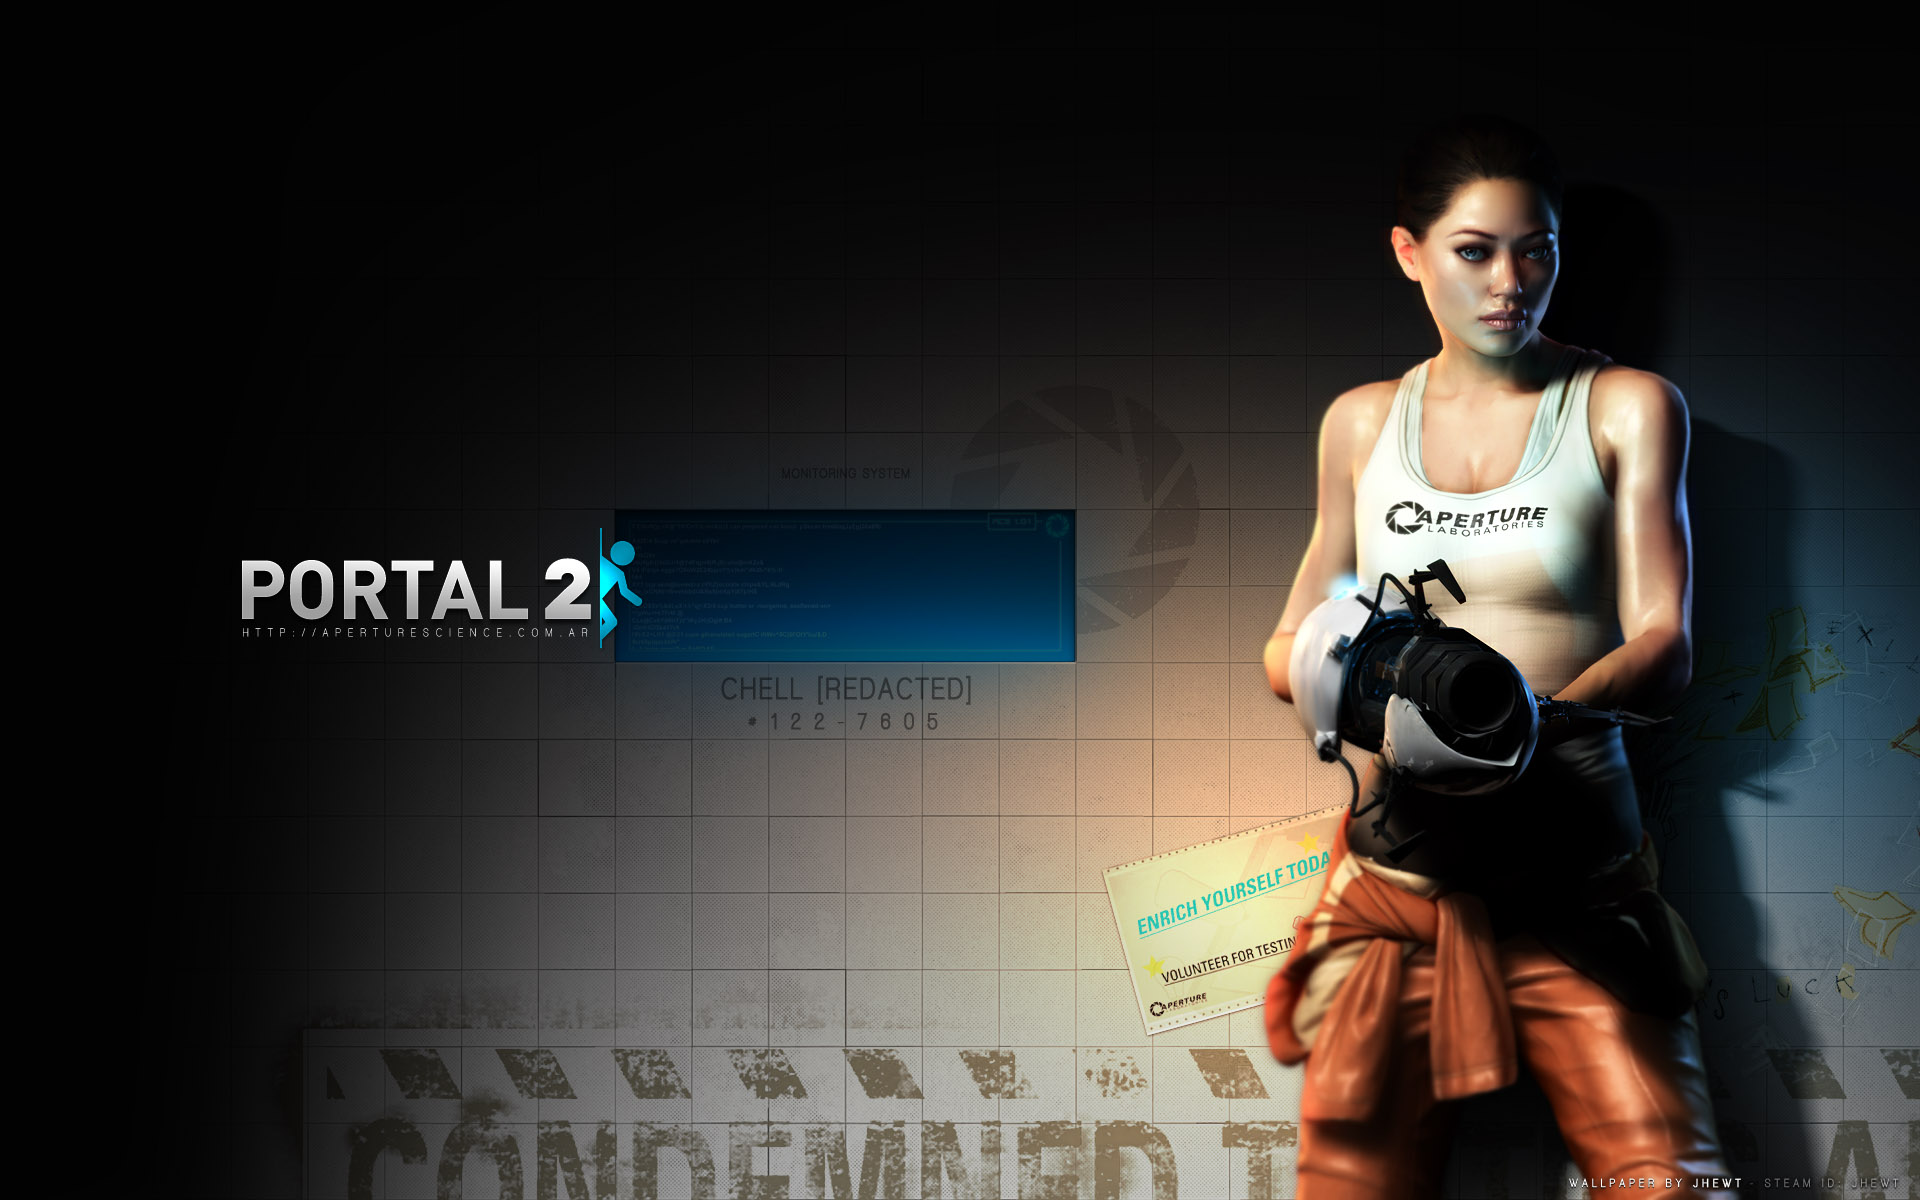 Portal 2 Chell Wallpaper LOLd Wallpaper   Funny Pictures   Funny 1920x1200